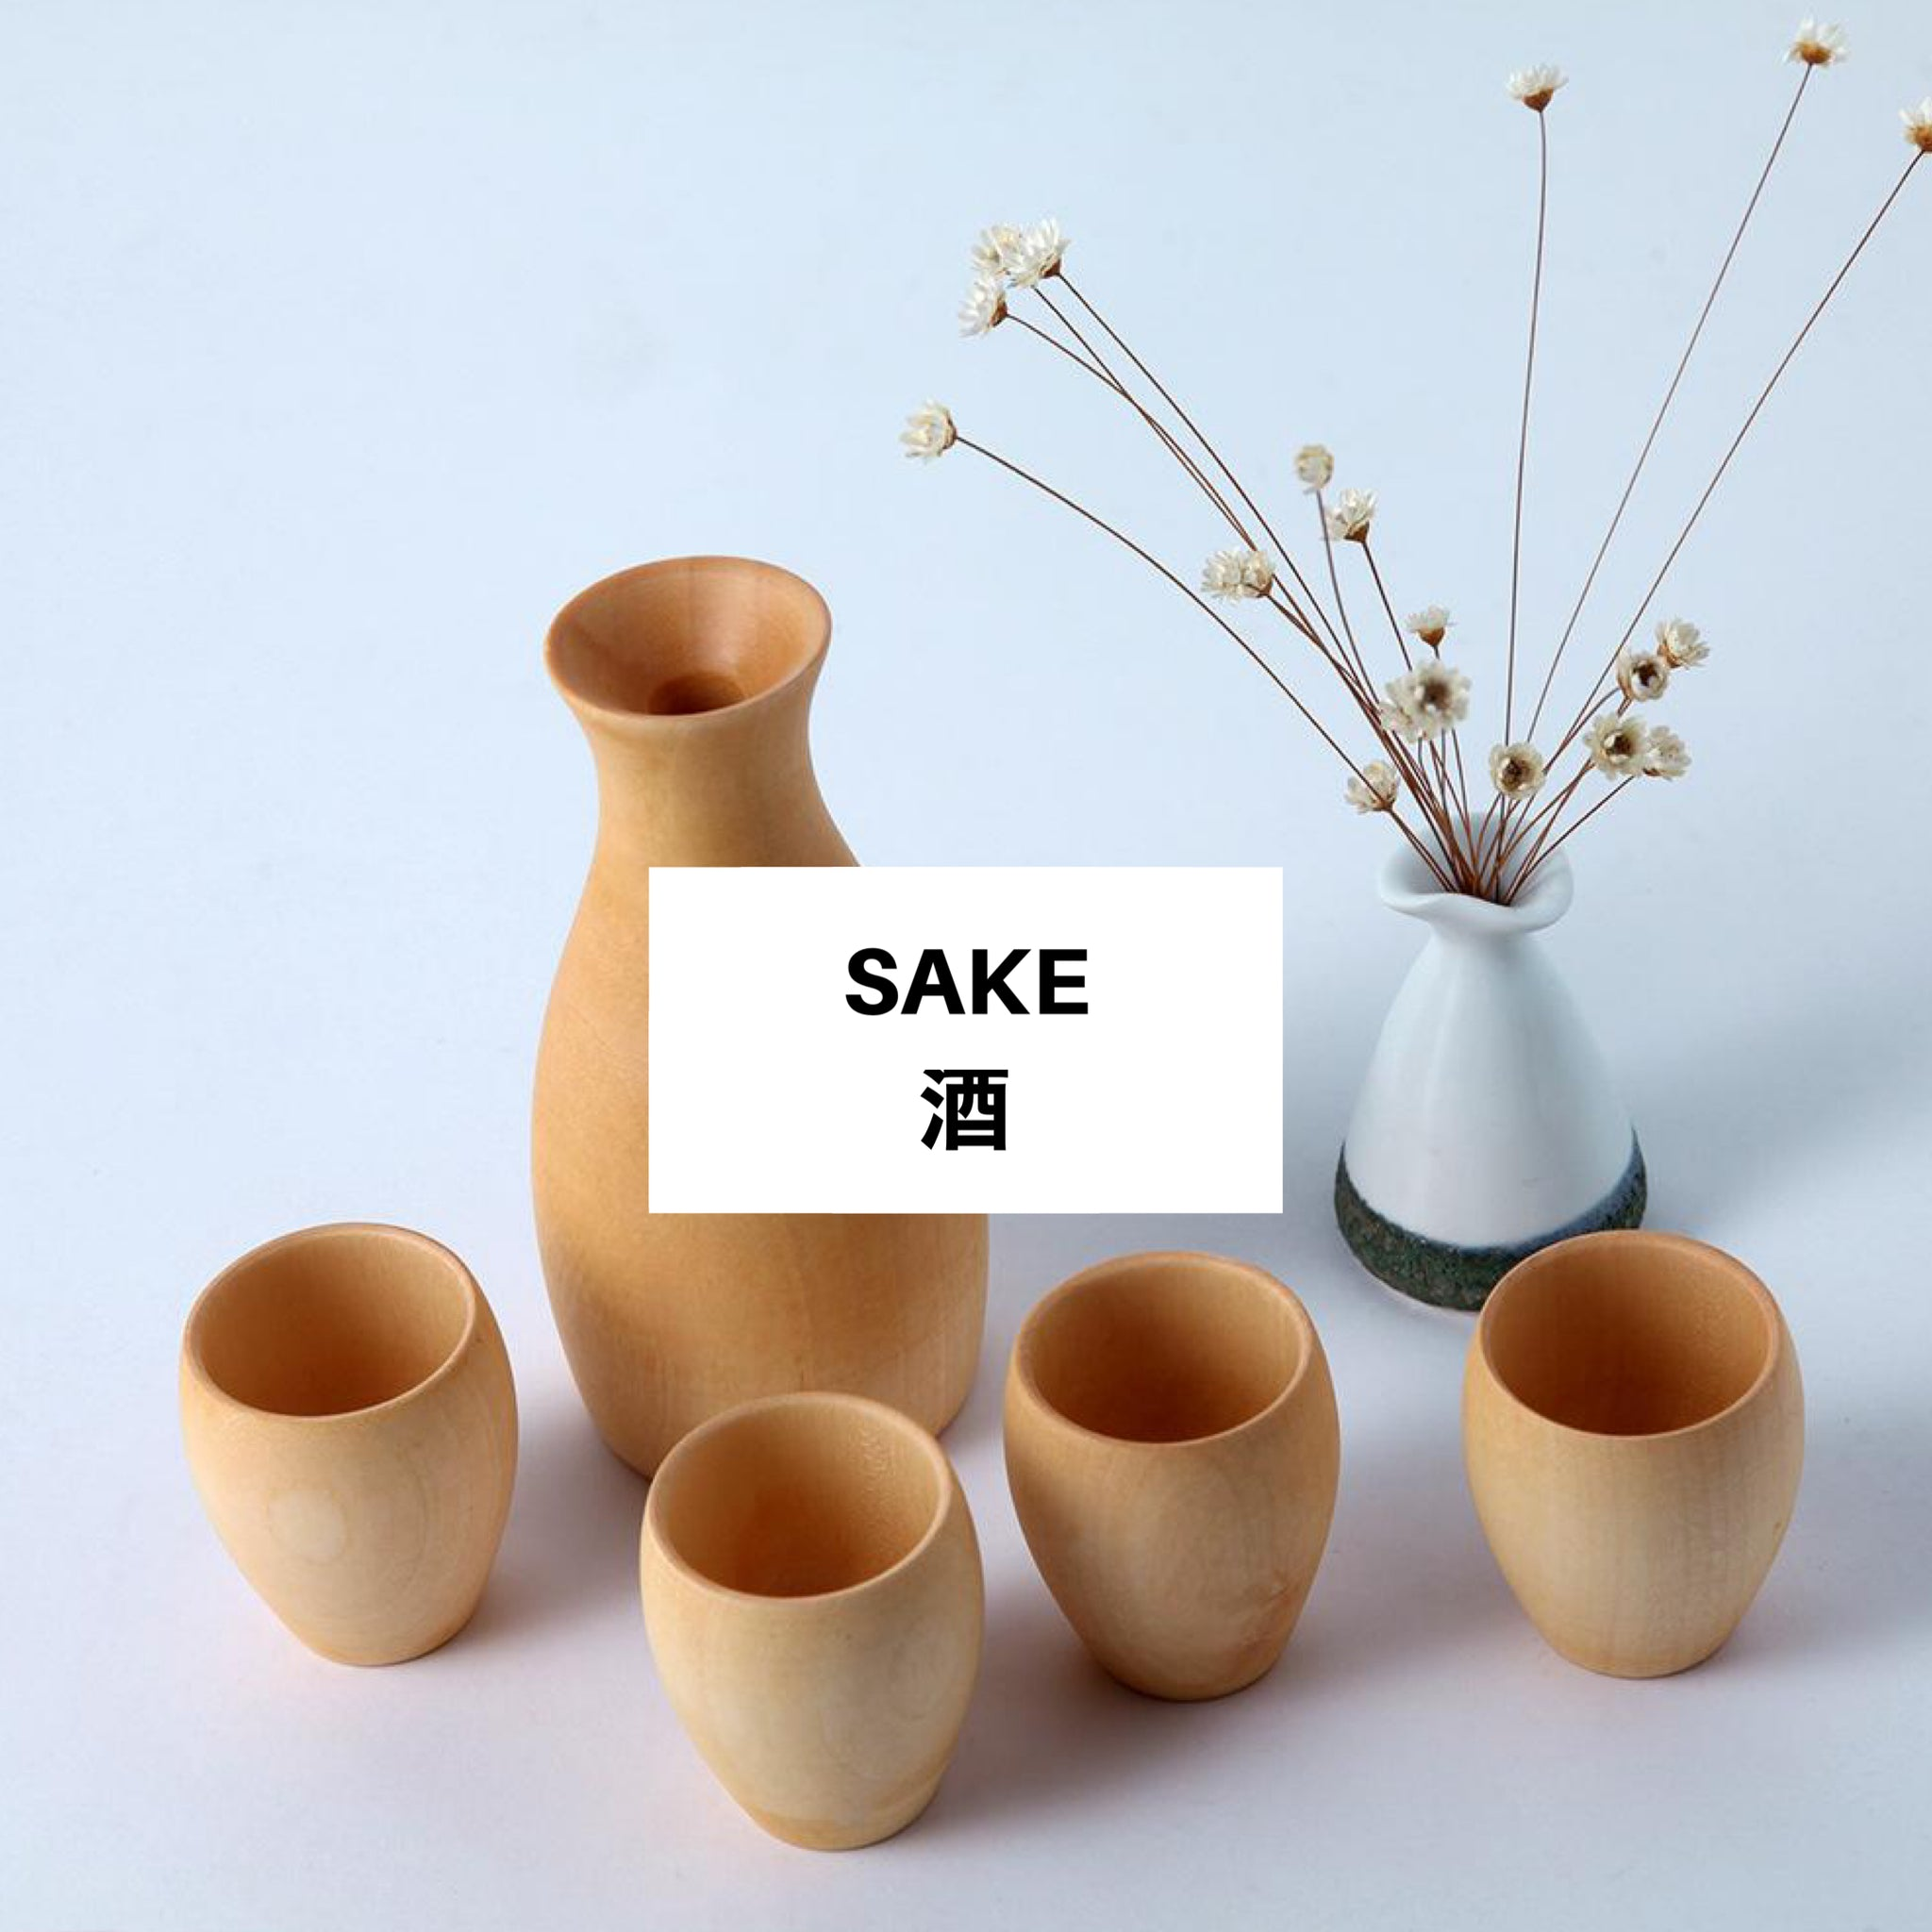 miTeigi | Sake | Japanese Apparel and Home Decor Retail Shopping